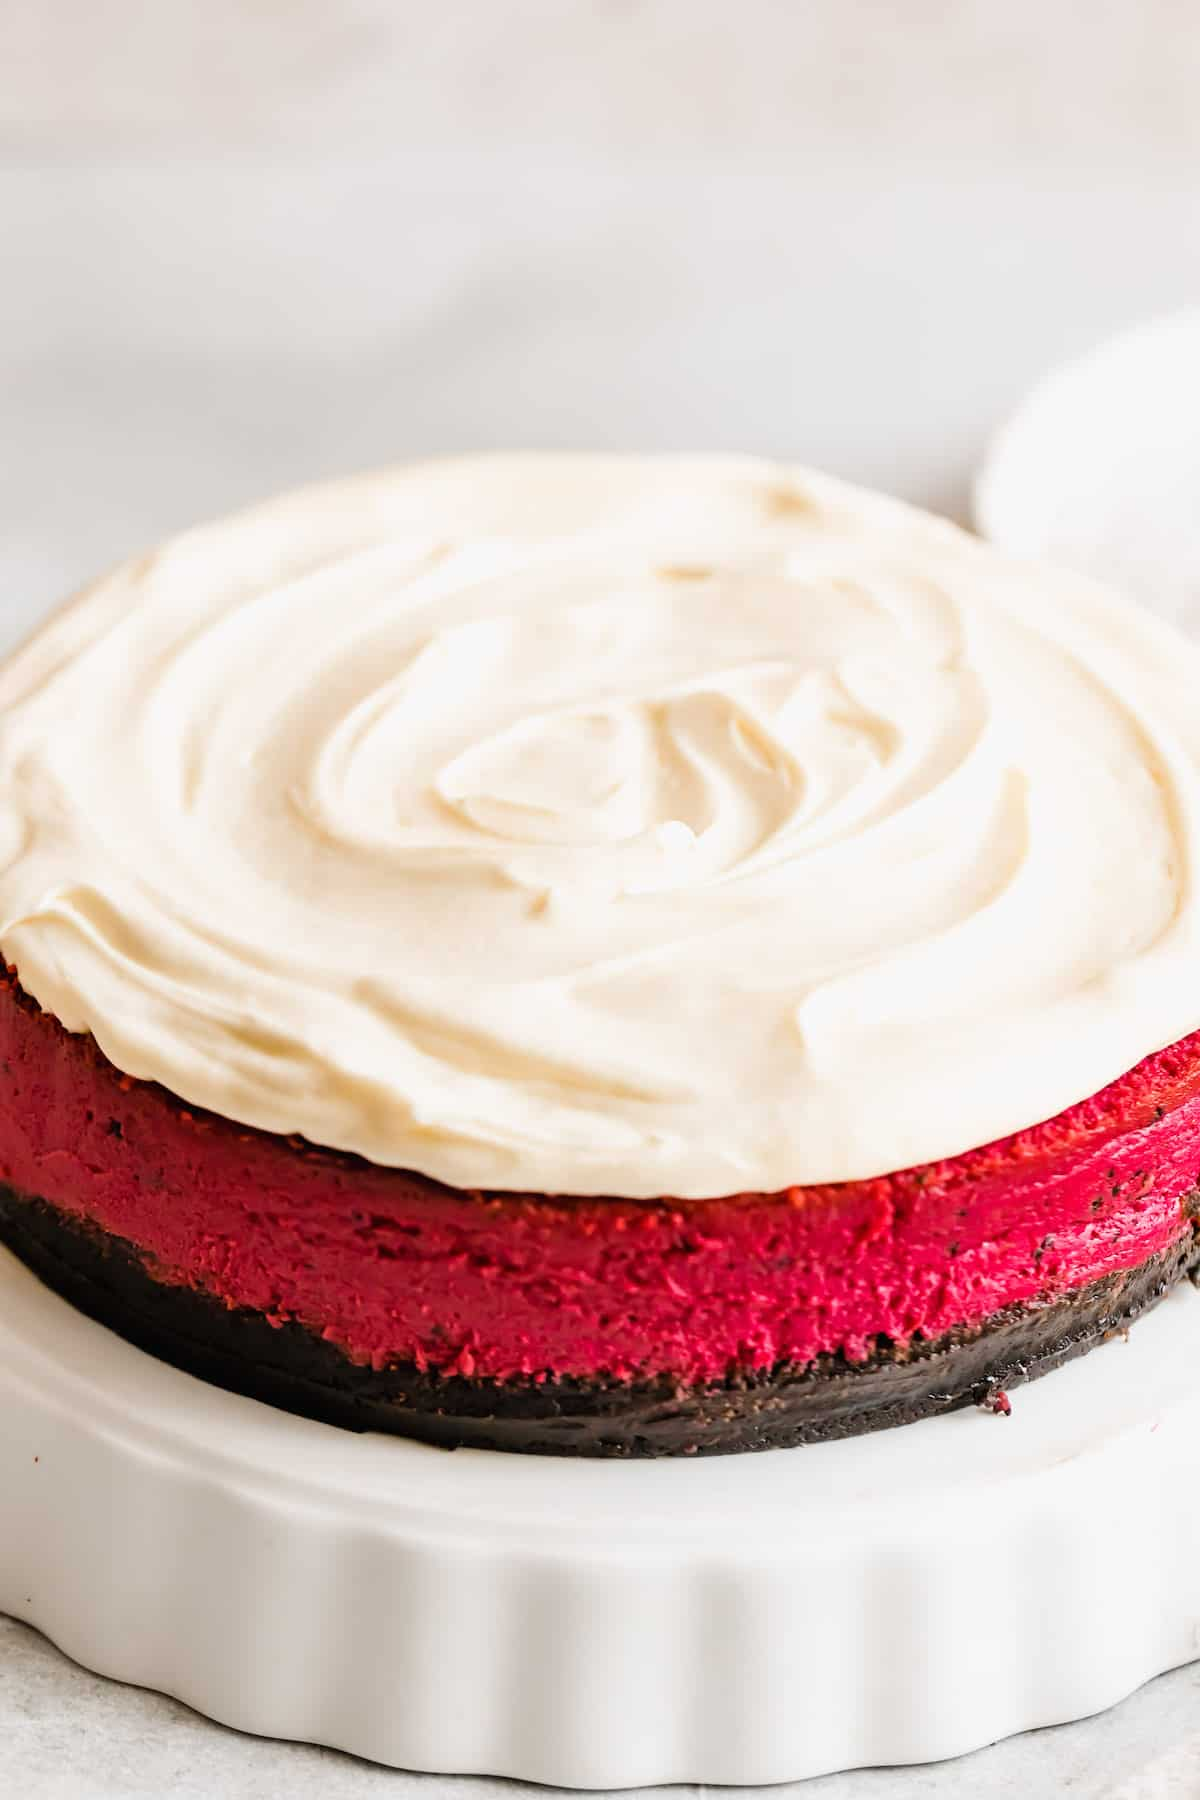 A Close-Up Shot of a Red Velvet Cheesecake Frosted with Homemade Cream Cheese Icing